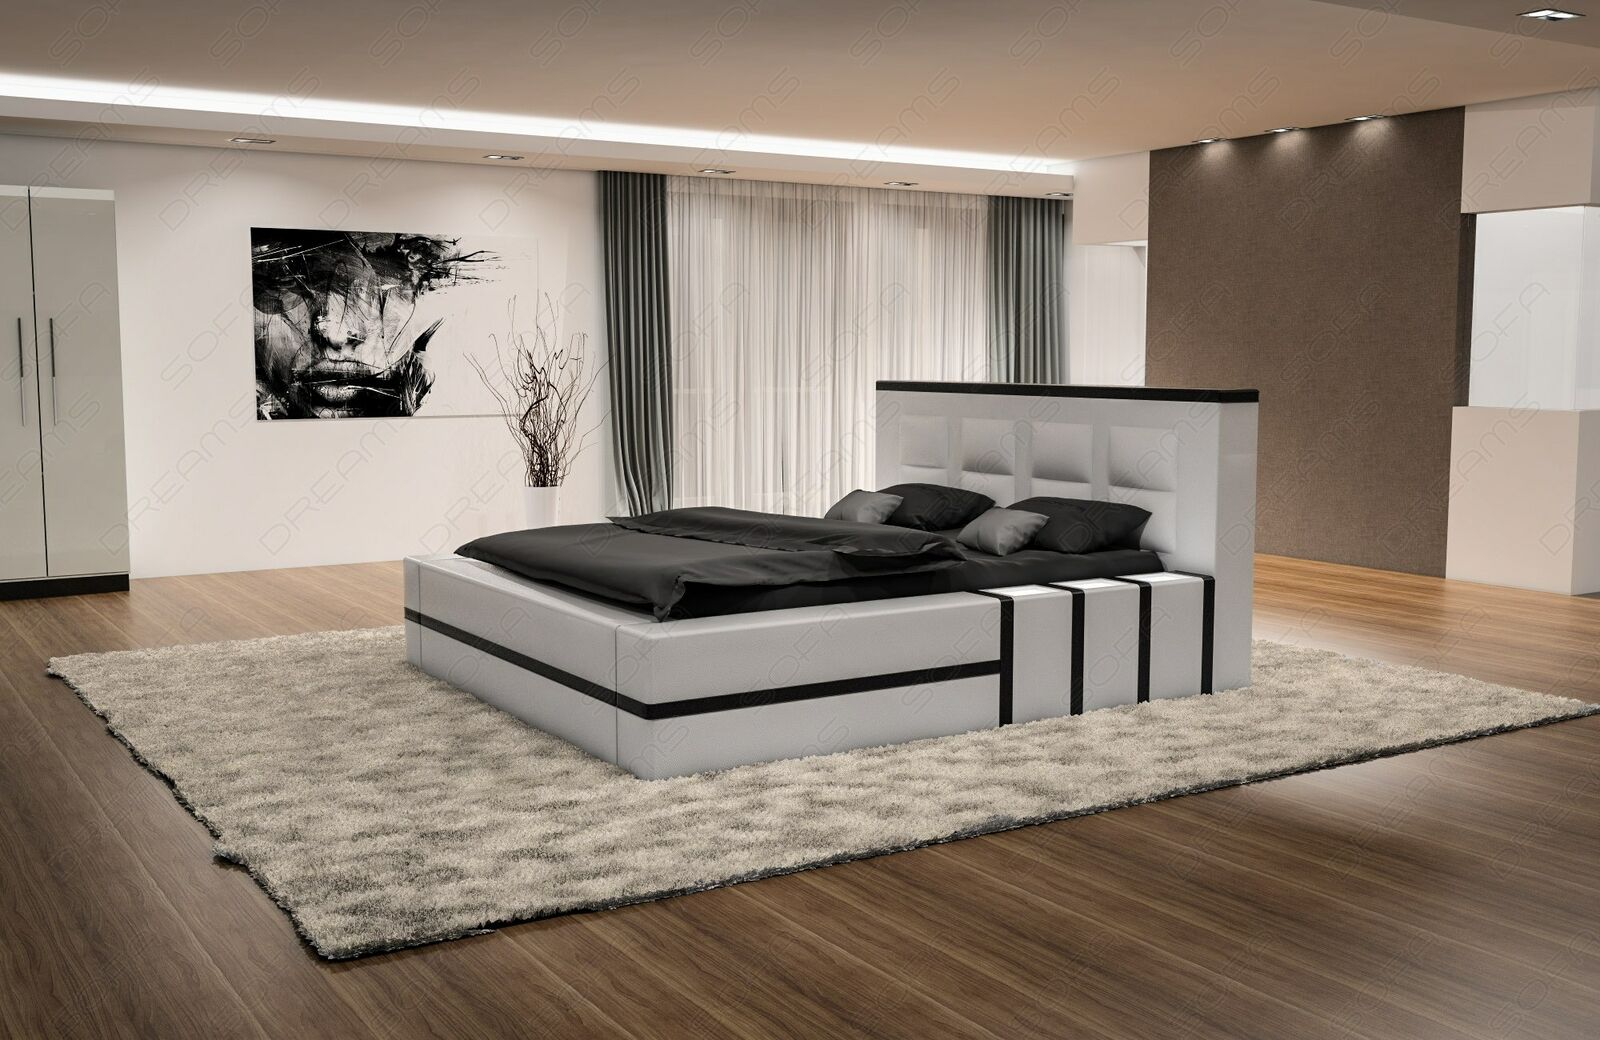 komplettbett design boxspringbett asti mit beleuchtung hotelbett eur picclick de. Black Bedroom Furniture Sets. Home Design Ideas